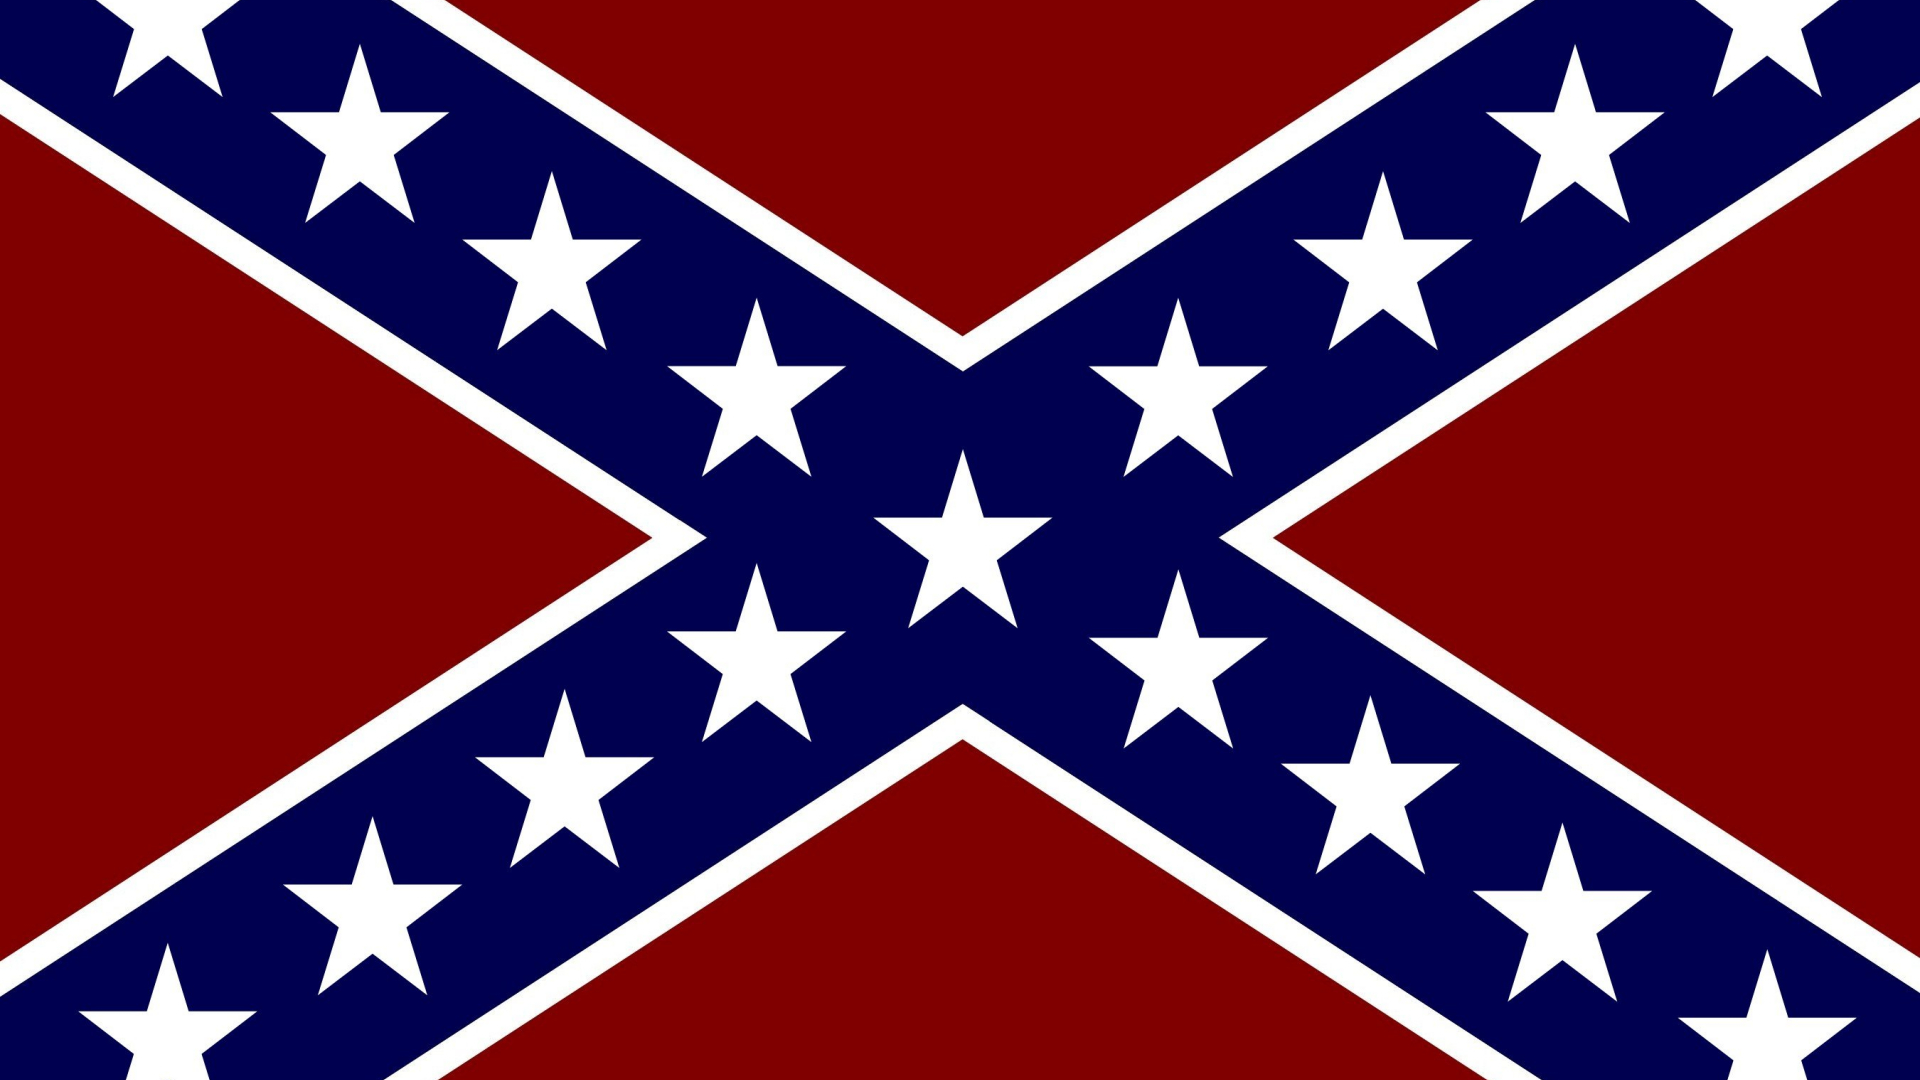 Free Download Confederate Flag Usa America United States Csa Civil War Rebel Dixie 2700x1800 For Your Desktop Mobile Tablet Explore 49 Rebel Flag Iphone Wallpaper Free Rebel Flag Wallpaper